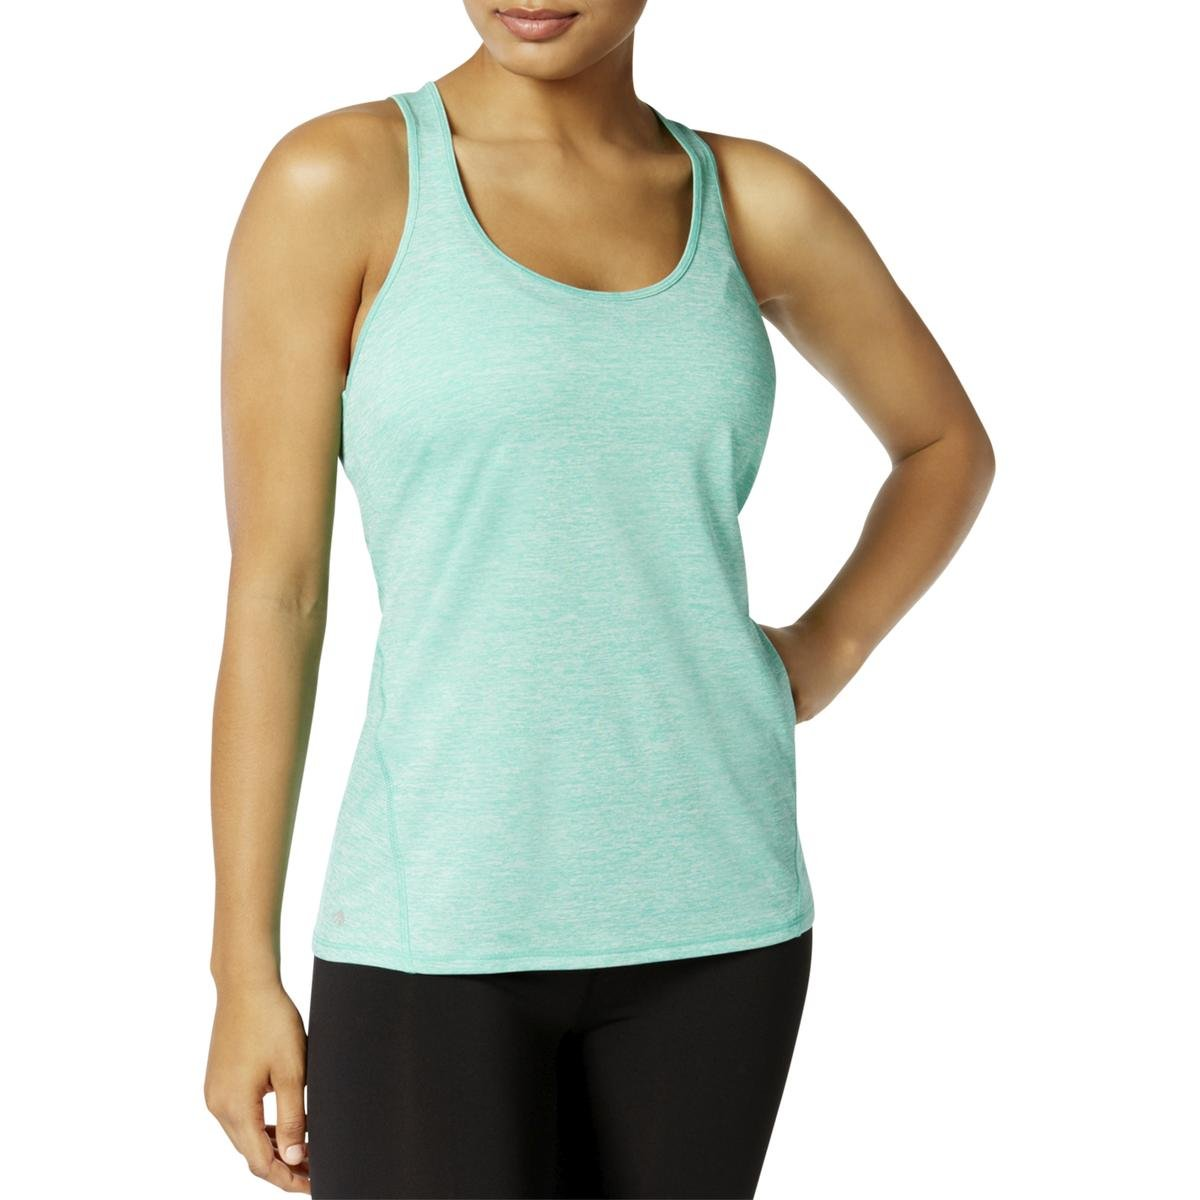 Ideology Womens Yoga Fitnesss Tank Top Green XS